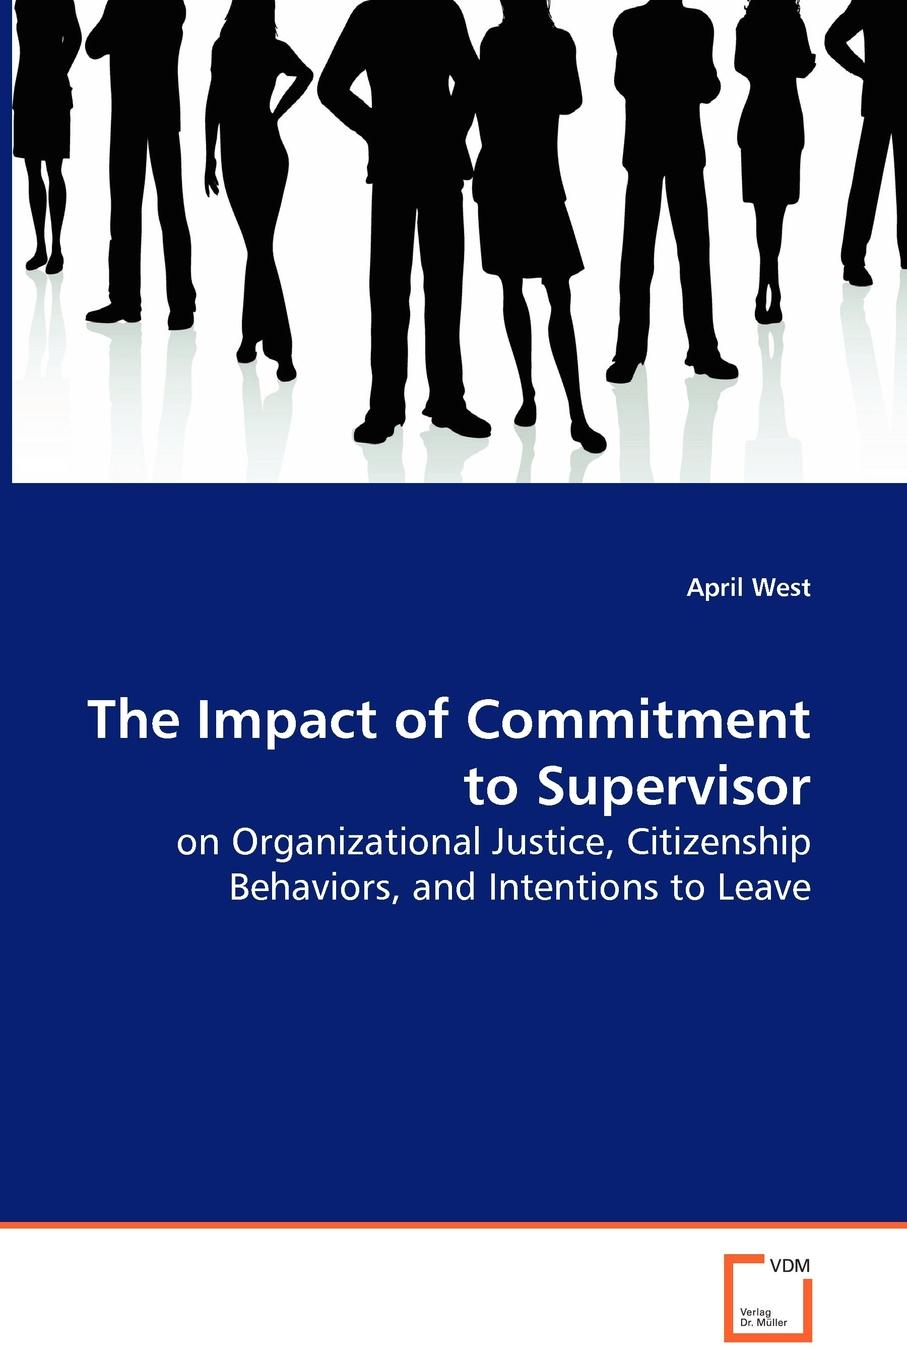 April West The Impact of Commitment to Supervisor - on Organizational Justice, Citizenship Behaviors, and Intentions to Leave employeeship and organizational excellence